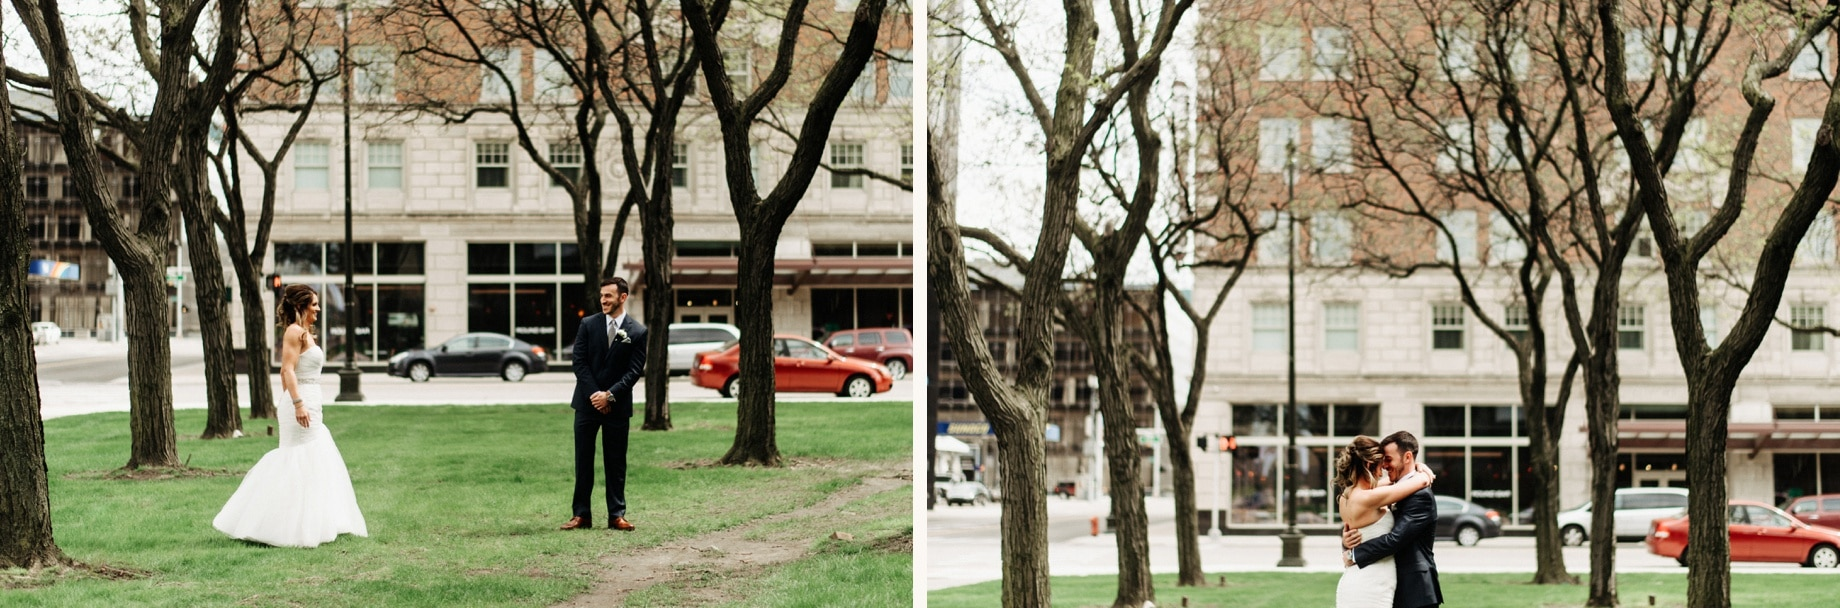 bride and groom share a first look in downtown detroit